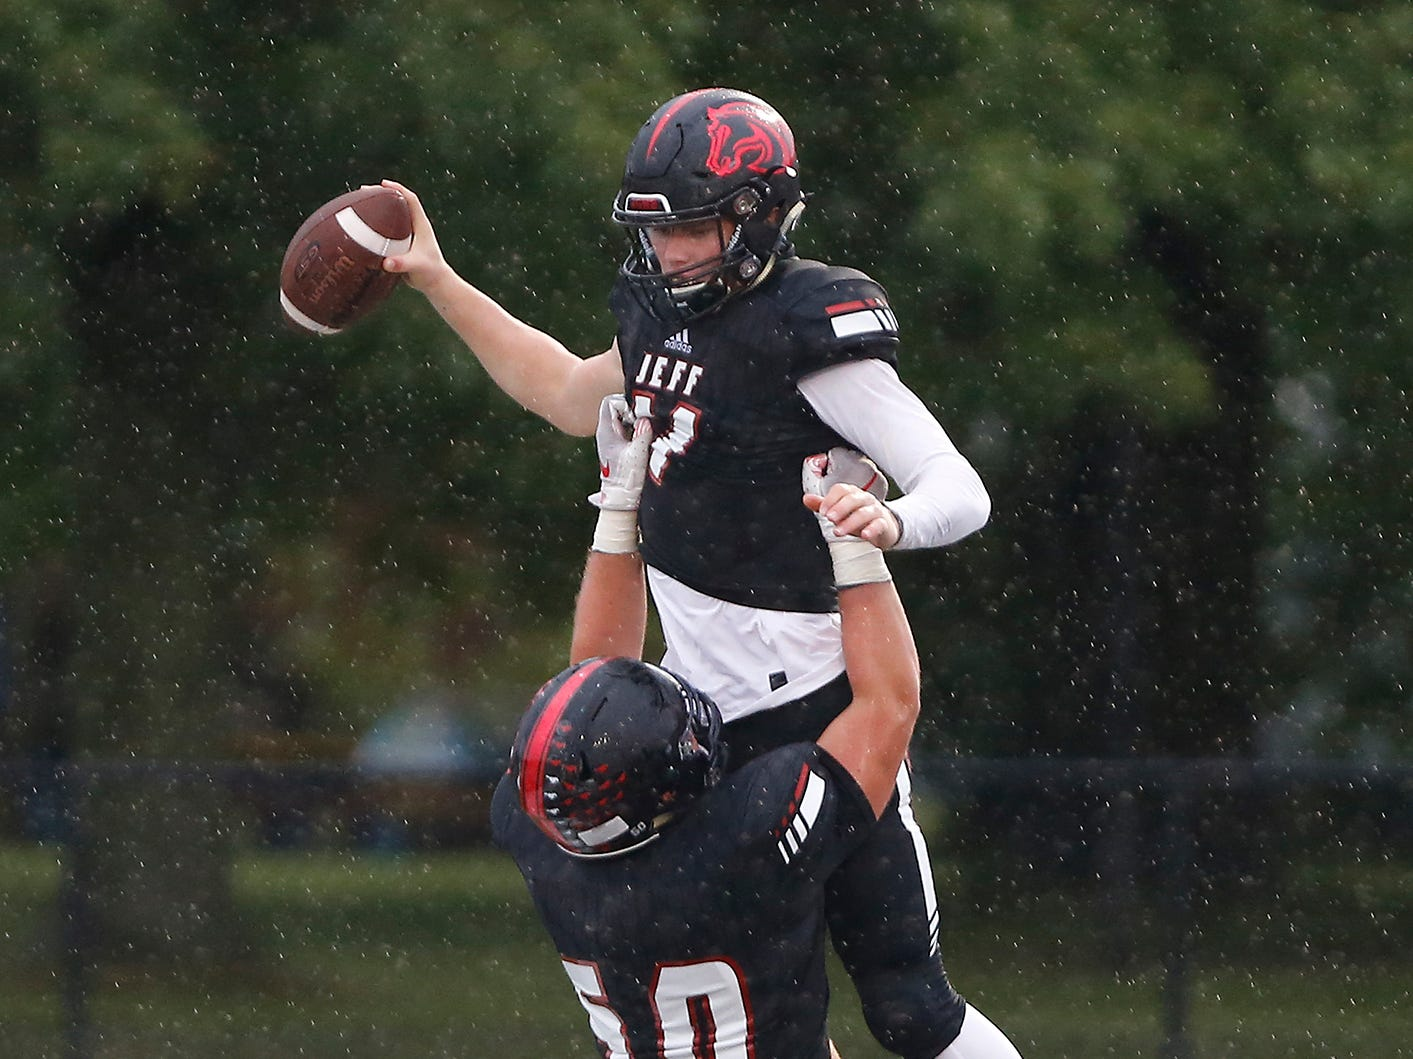 Lafayette Jeff quarterback Maximus Grimes is lifted into the air by teammate Colton Lehnen after his rushing touchdown at 9:48 in the first quarter against Harrison Friday, September 7, 2018, at Scheumann Stadium. Jeff defeated Harrison 31-14.